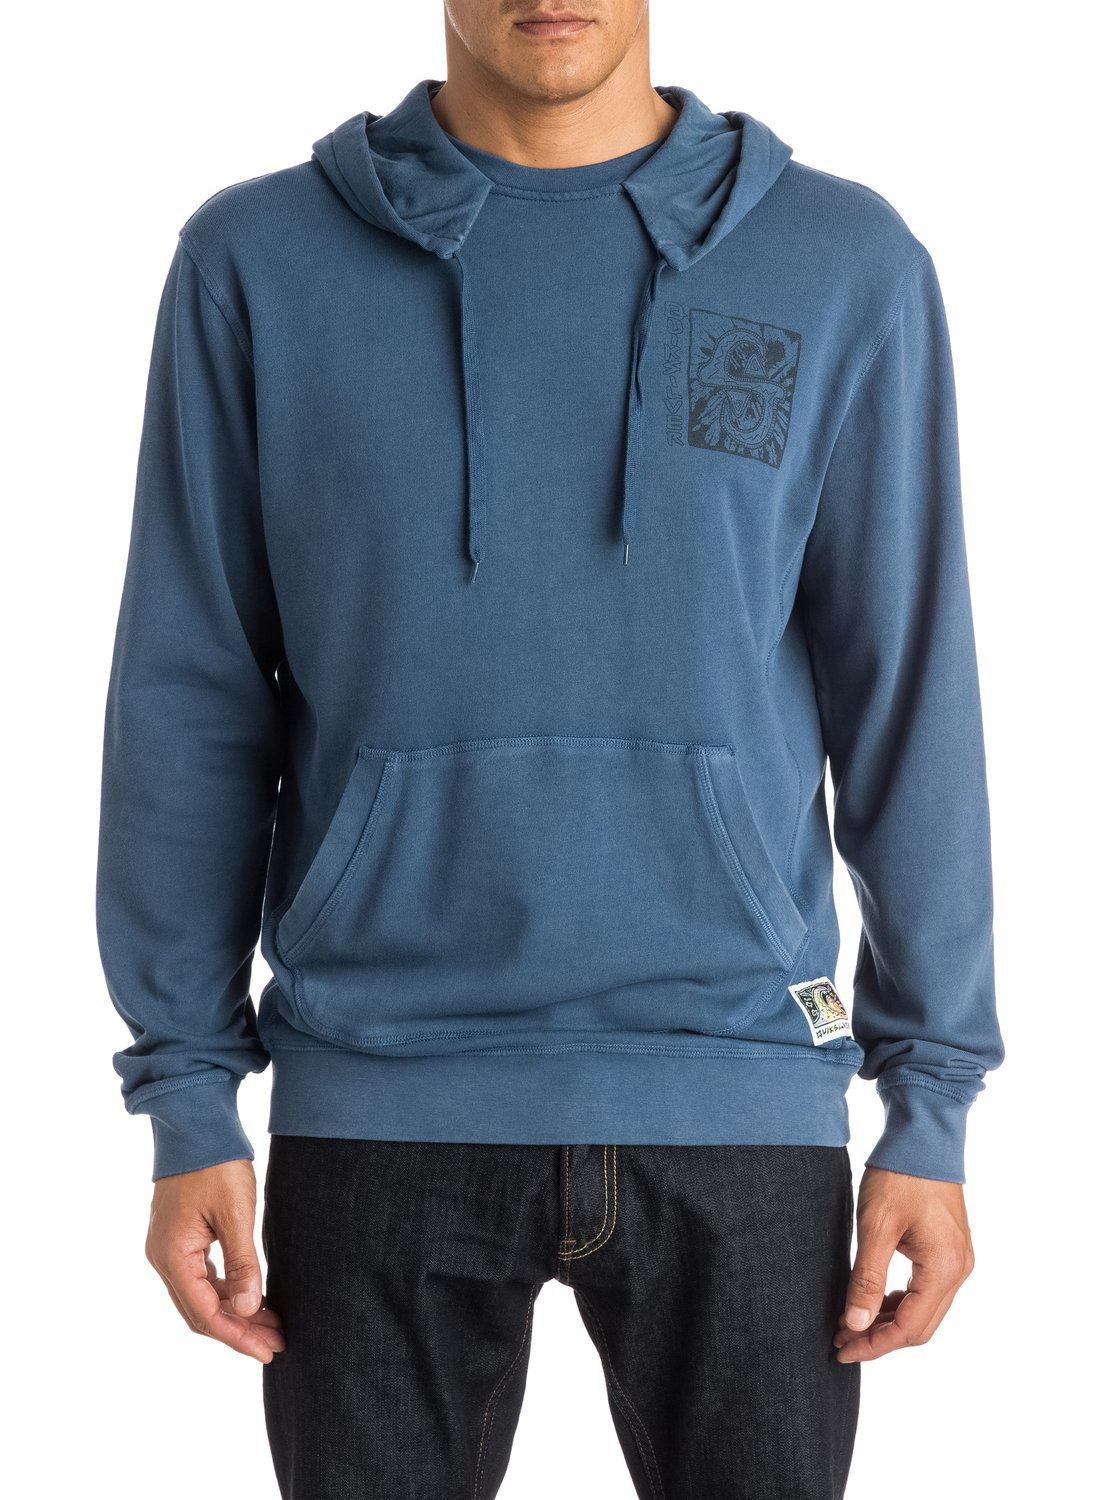 White Light Pullover Hoodie EQYFT03274 | Quiksilver